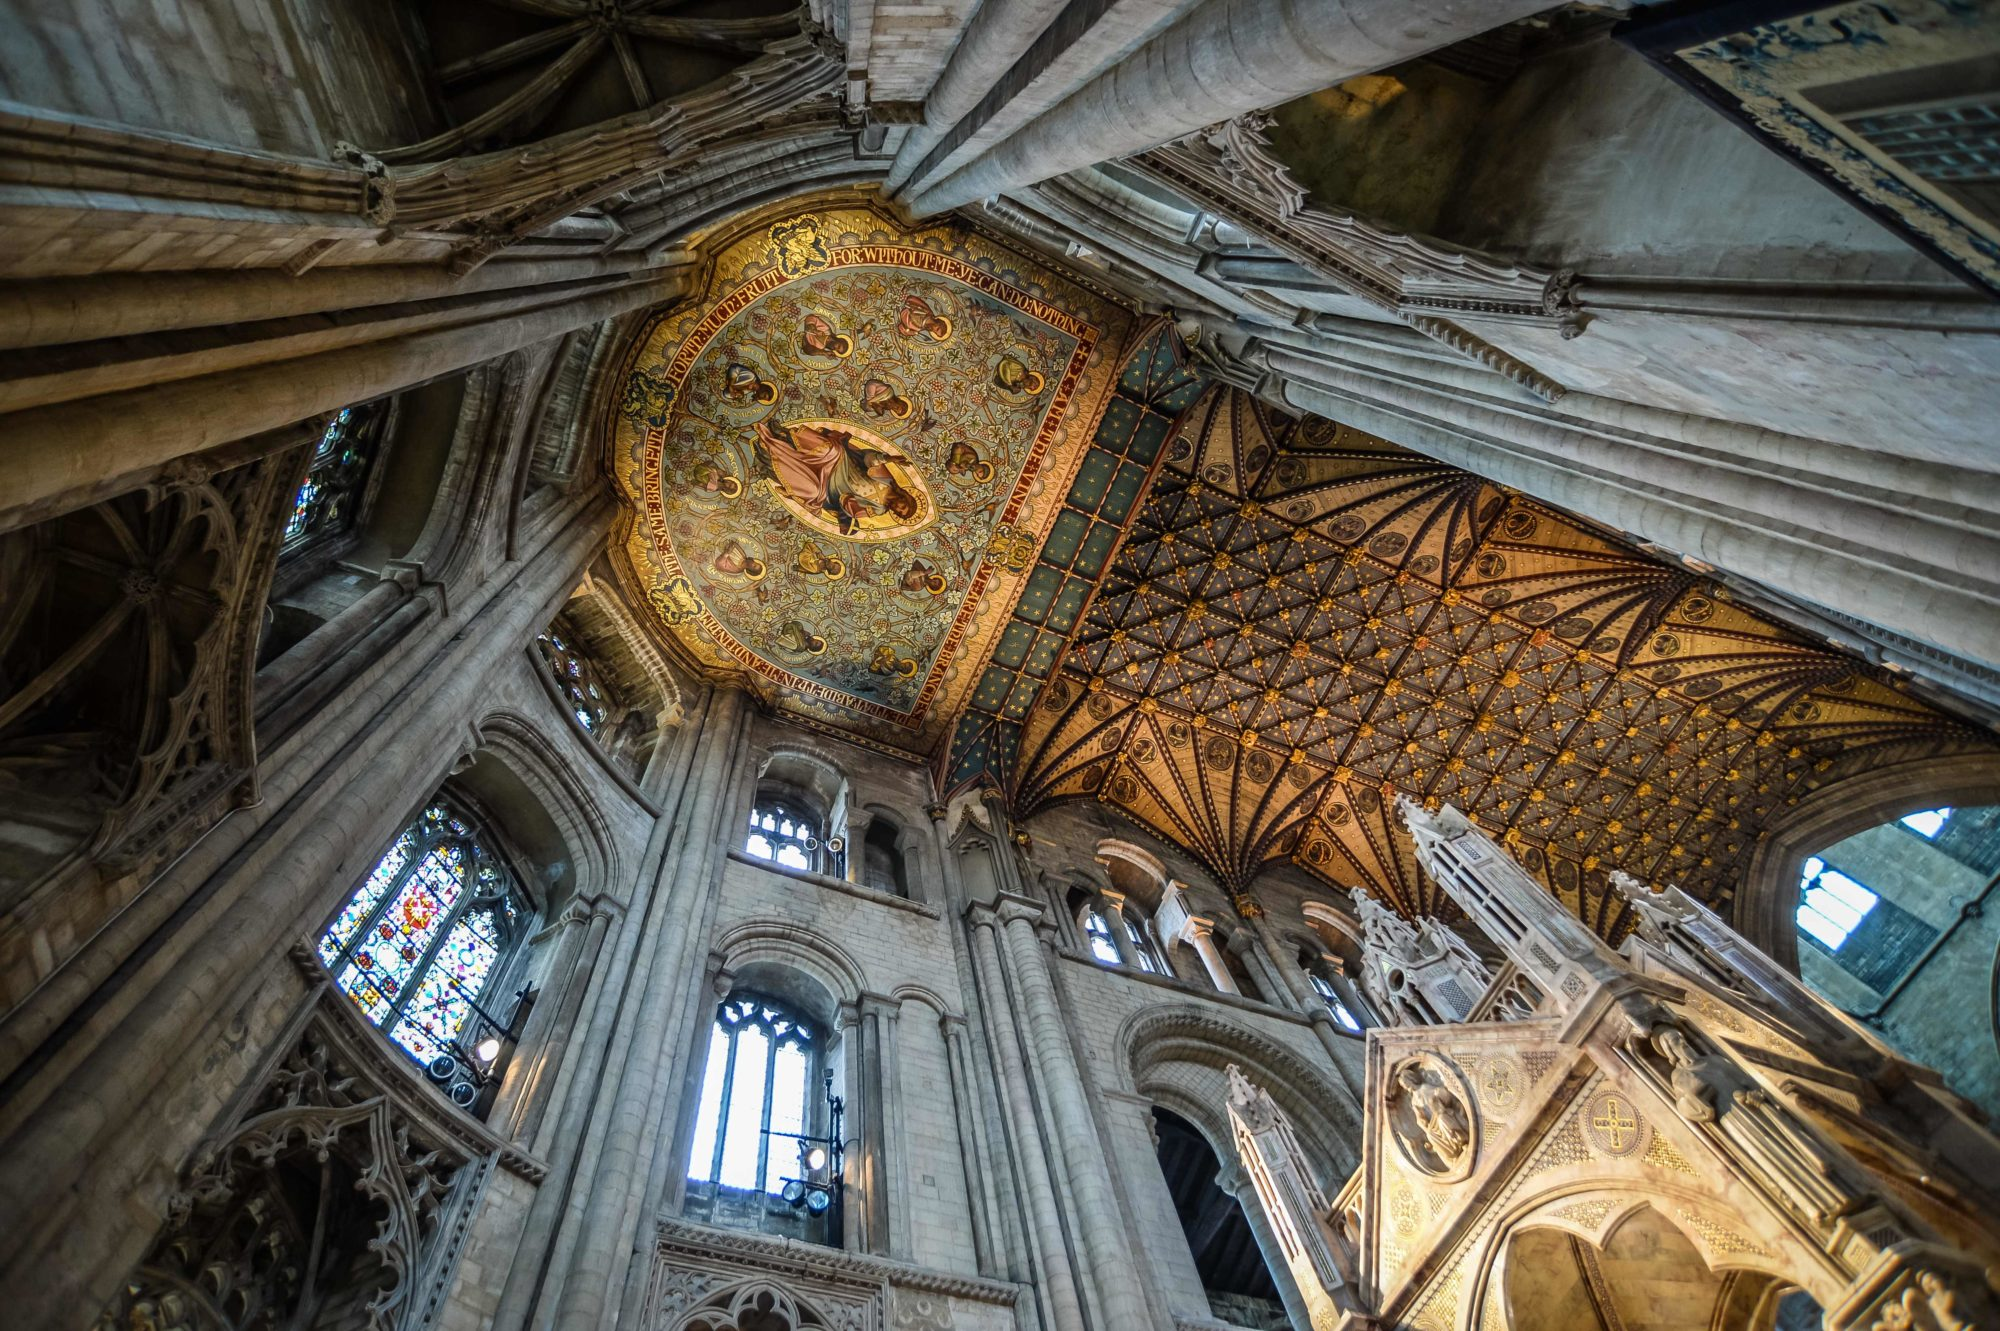 Ceilings at Peterborough Cathedral